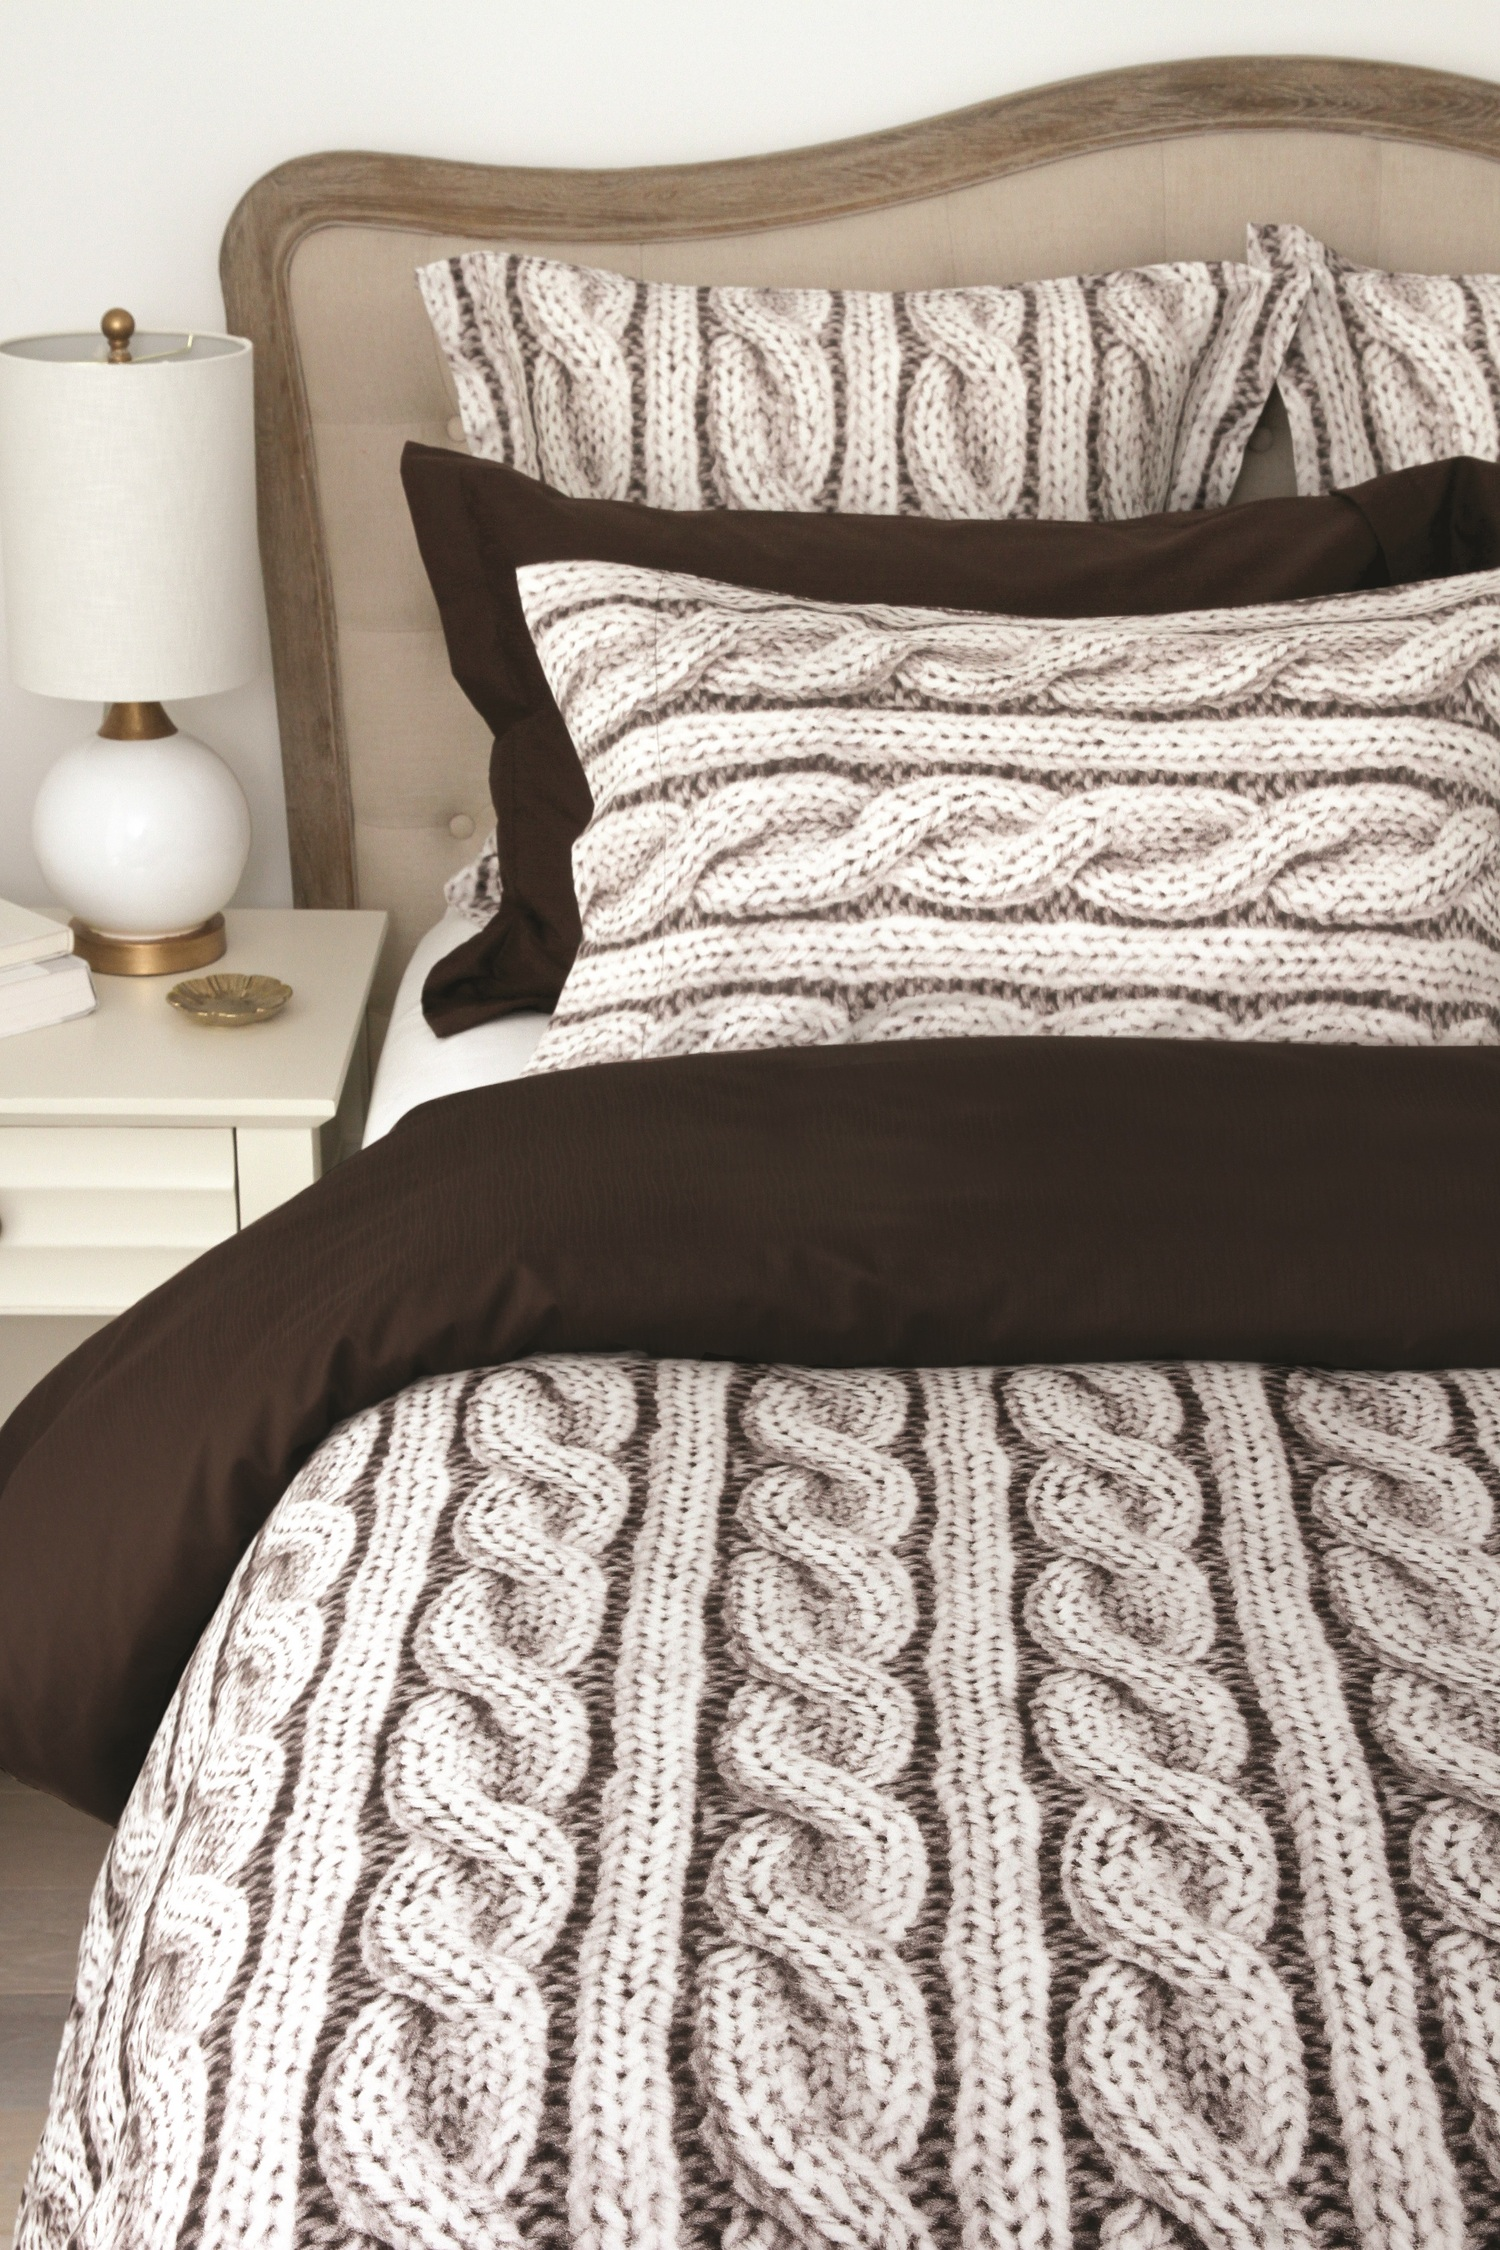 Cable Knit By Cd Bedding Of Ca Beddingsuperstore Com